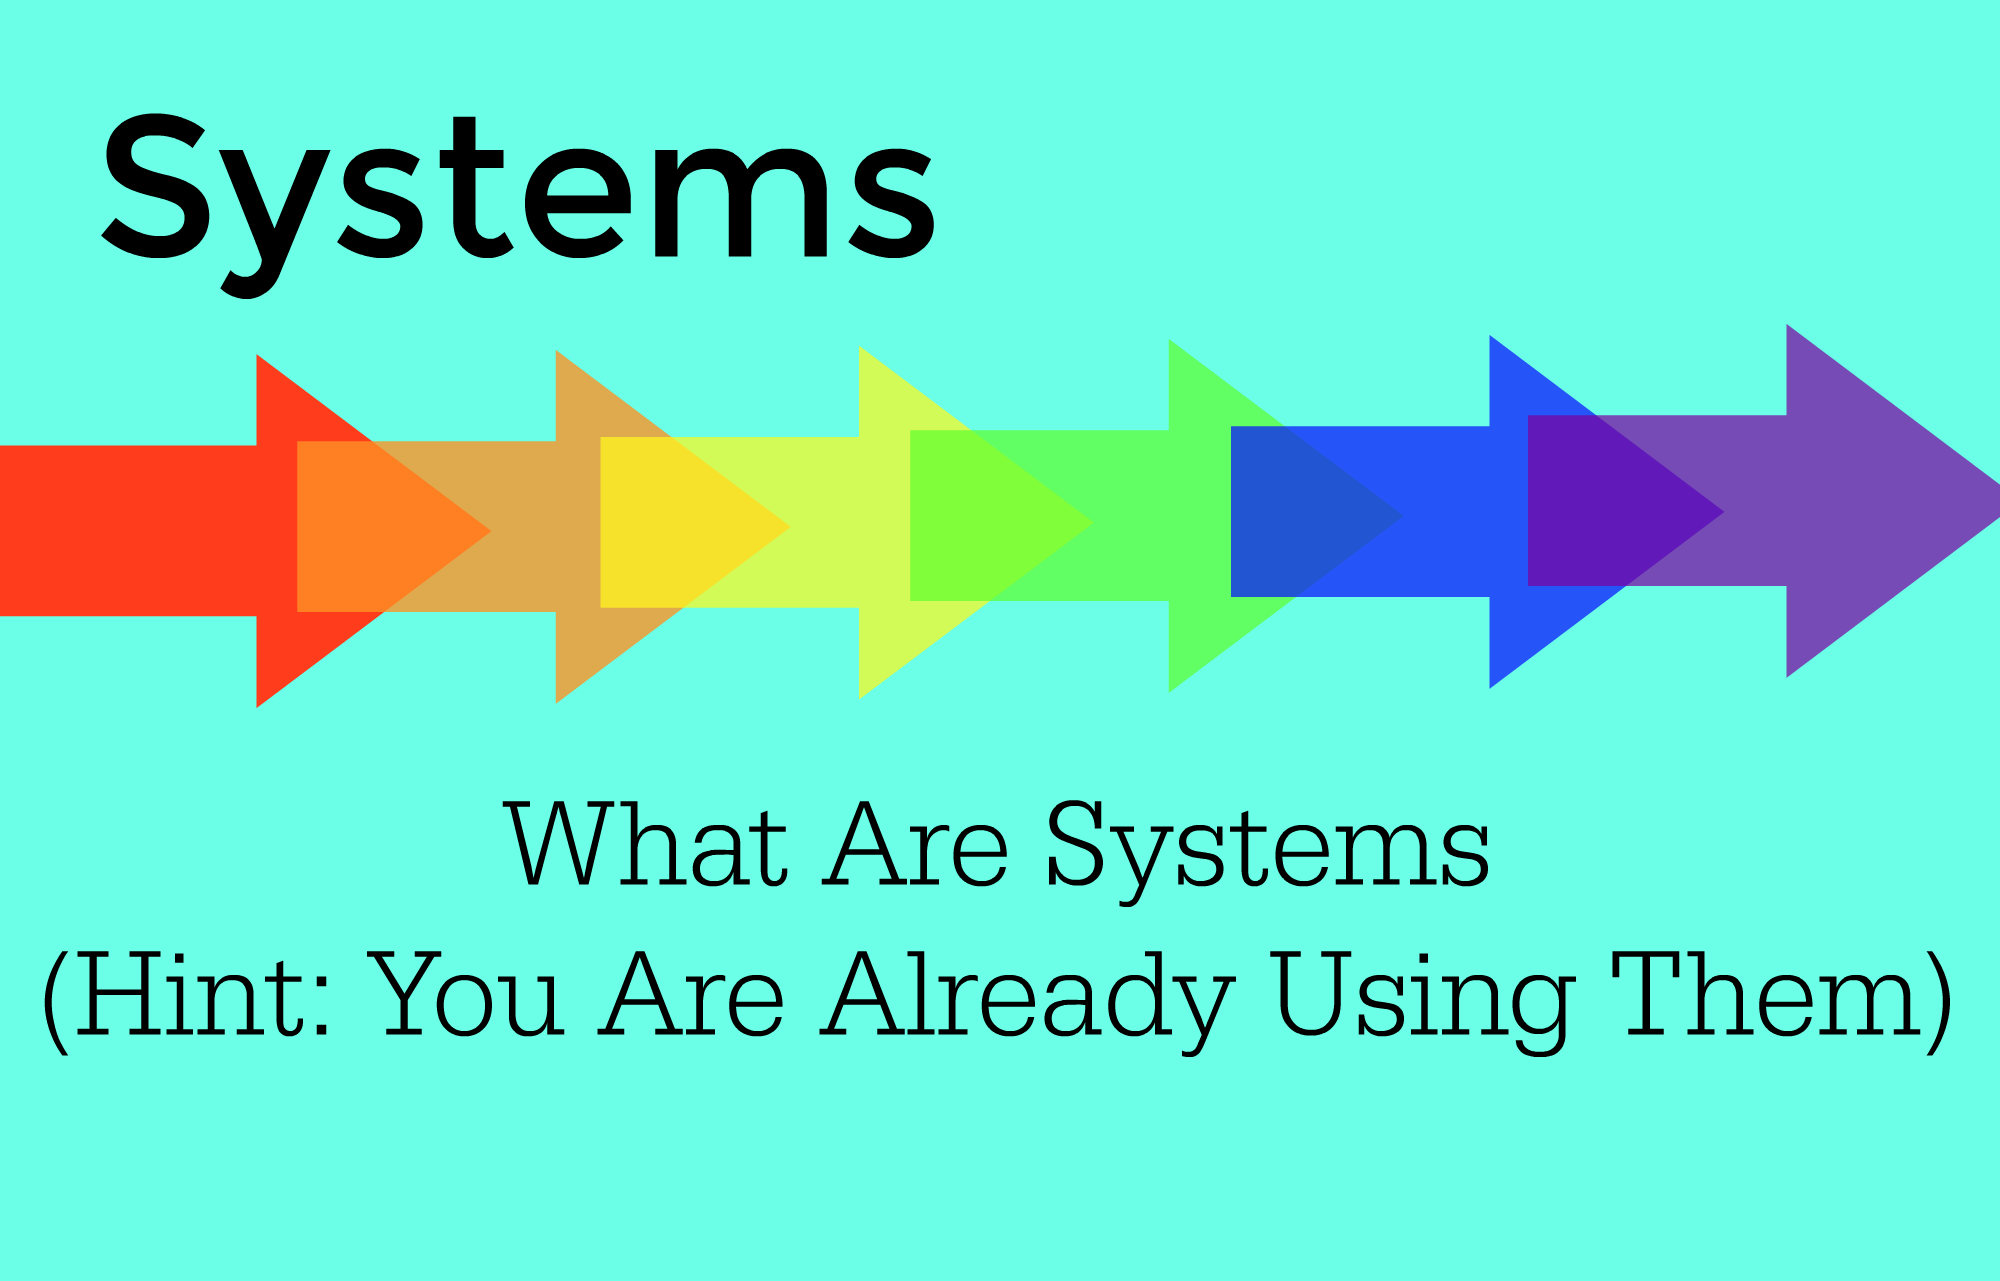 Systems 101: Why You Need Them (And How You're Already Using Them Anyway)